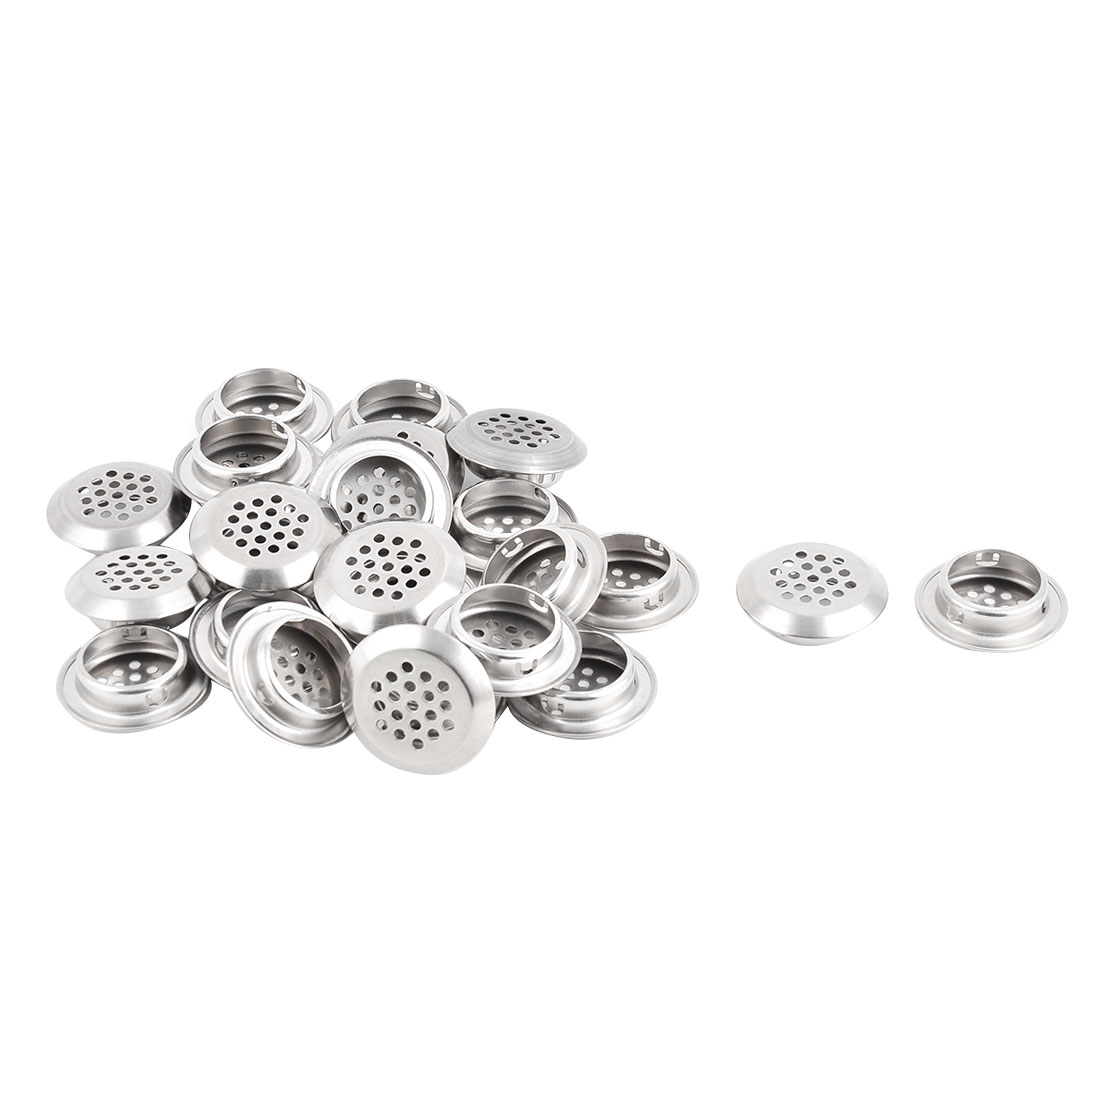 Home Bathroom Stainless Steel Round Mesh Hole Sink Strainer Filter Silver Tone 25pcs